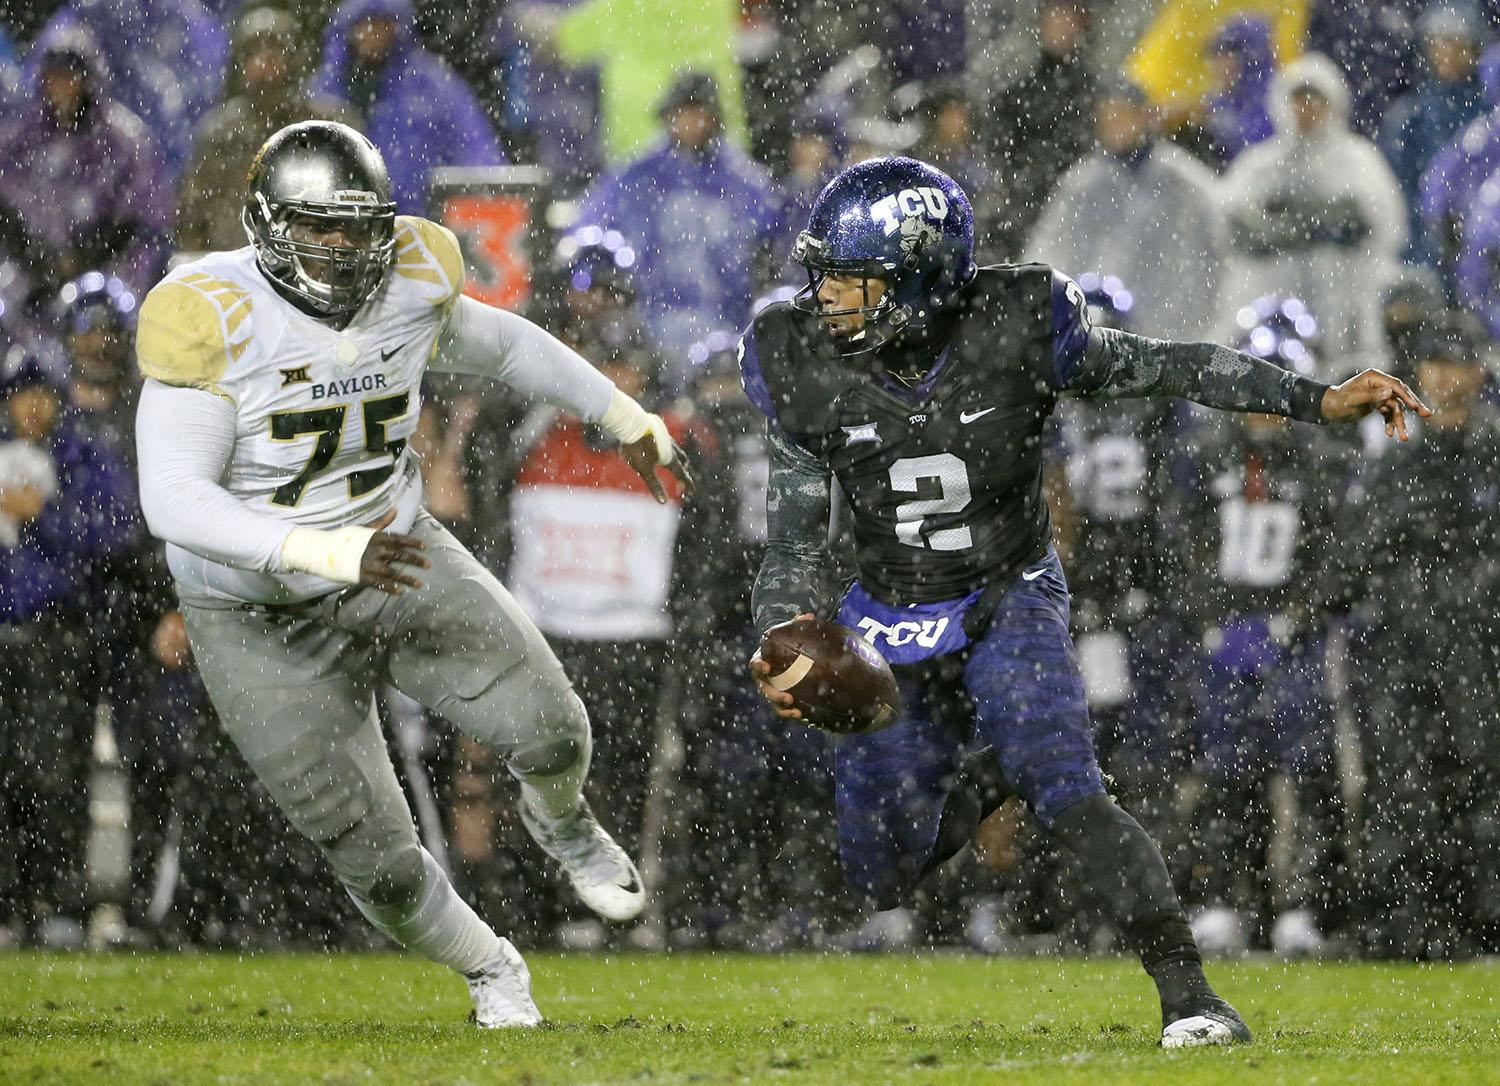 TCU quarterback Trevone Boykin (2) scrambles out of the pocket under pressure from Baylor defensive tackle Andrew Billings (75) in the first half of an NCAA college football game, Friday, Nov. 27, 2015, in Fort Worth, Texas. (AP Photo/Tony Gutierrez)